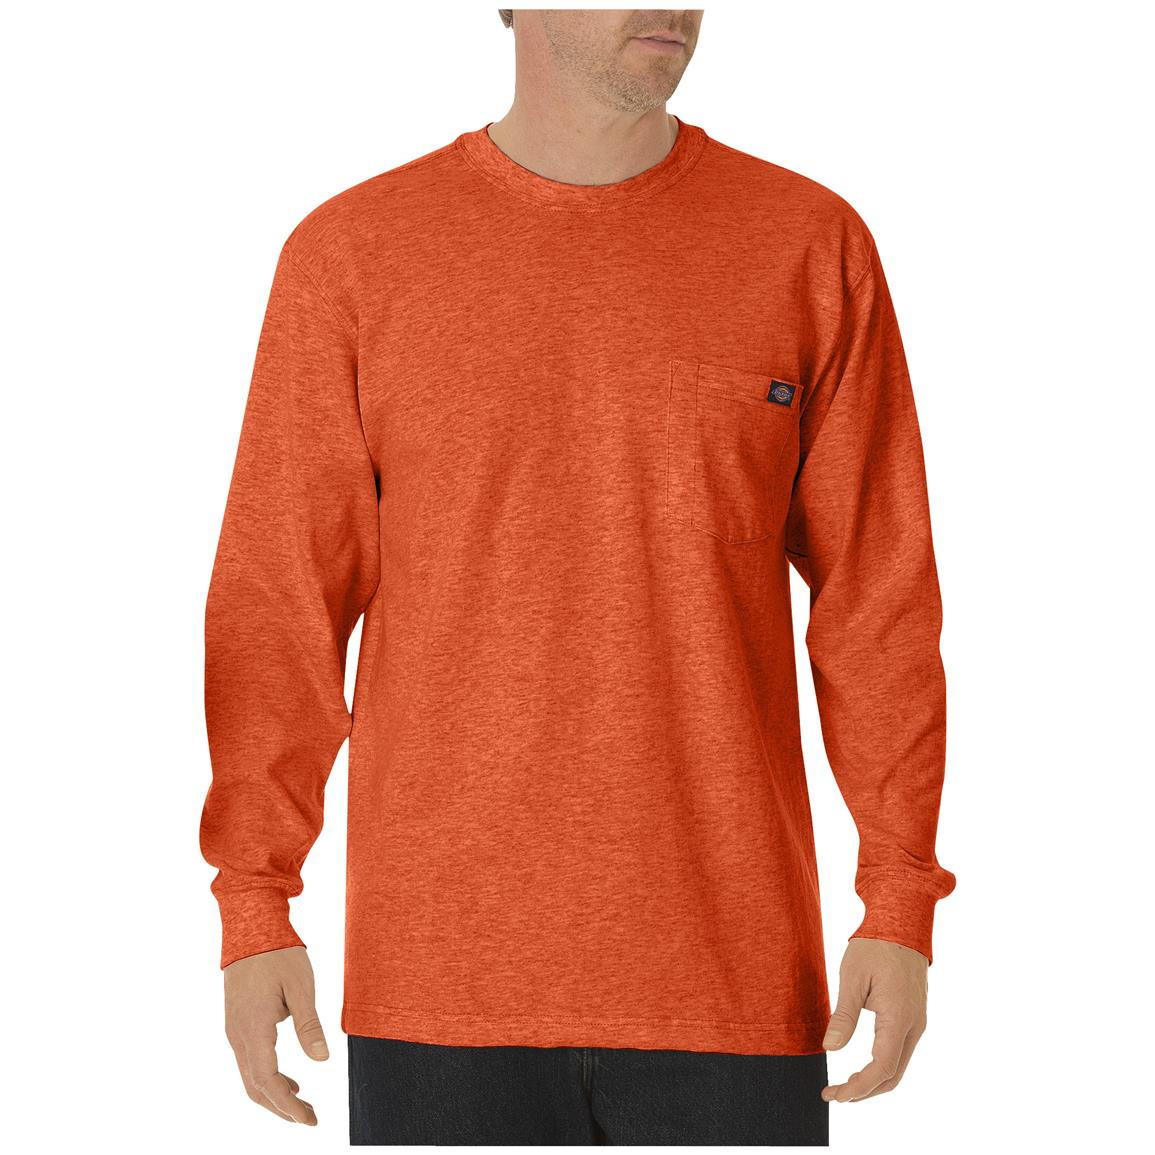 Dickies® Long-sleeved Heavyweight Crew Neck T-shirt, Orange